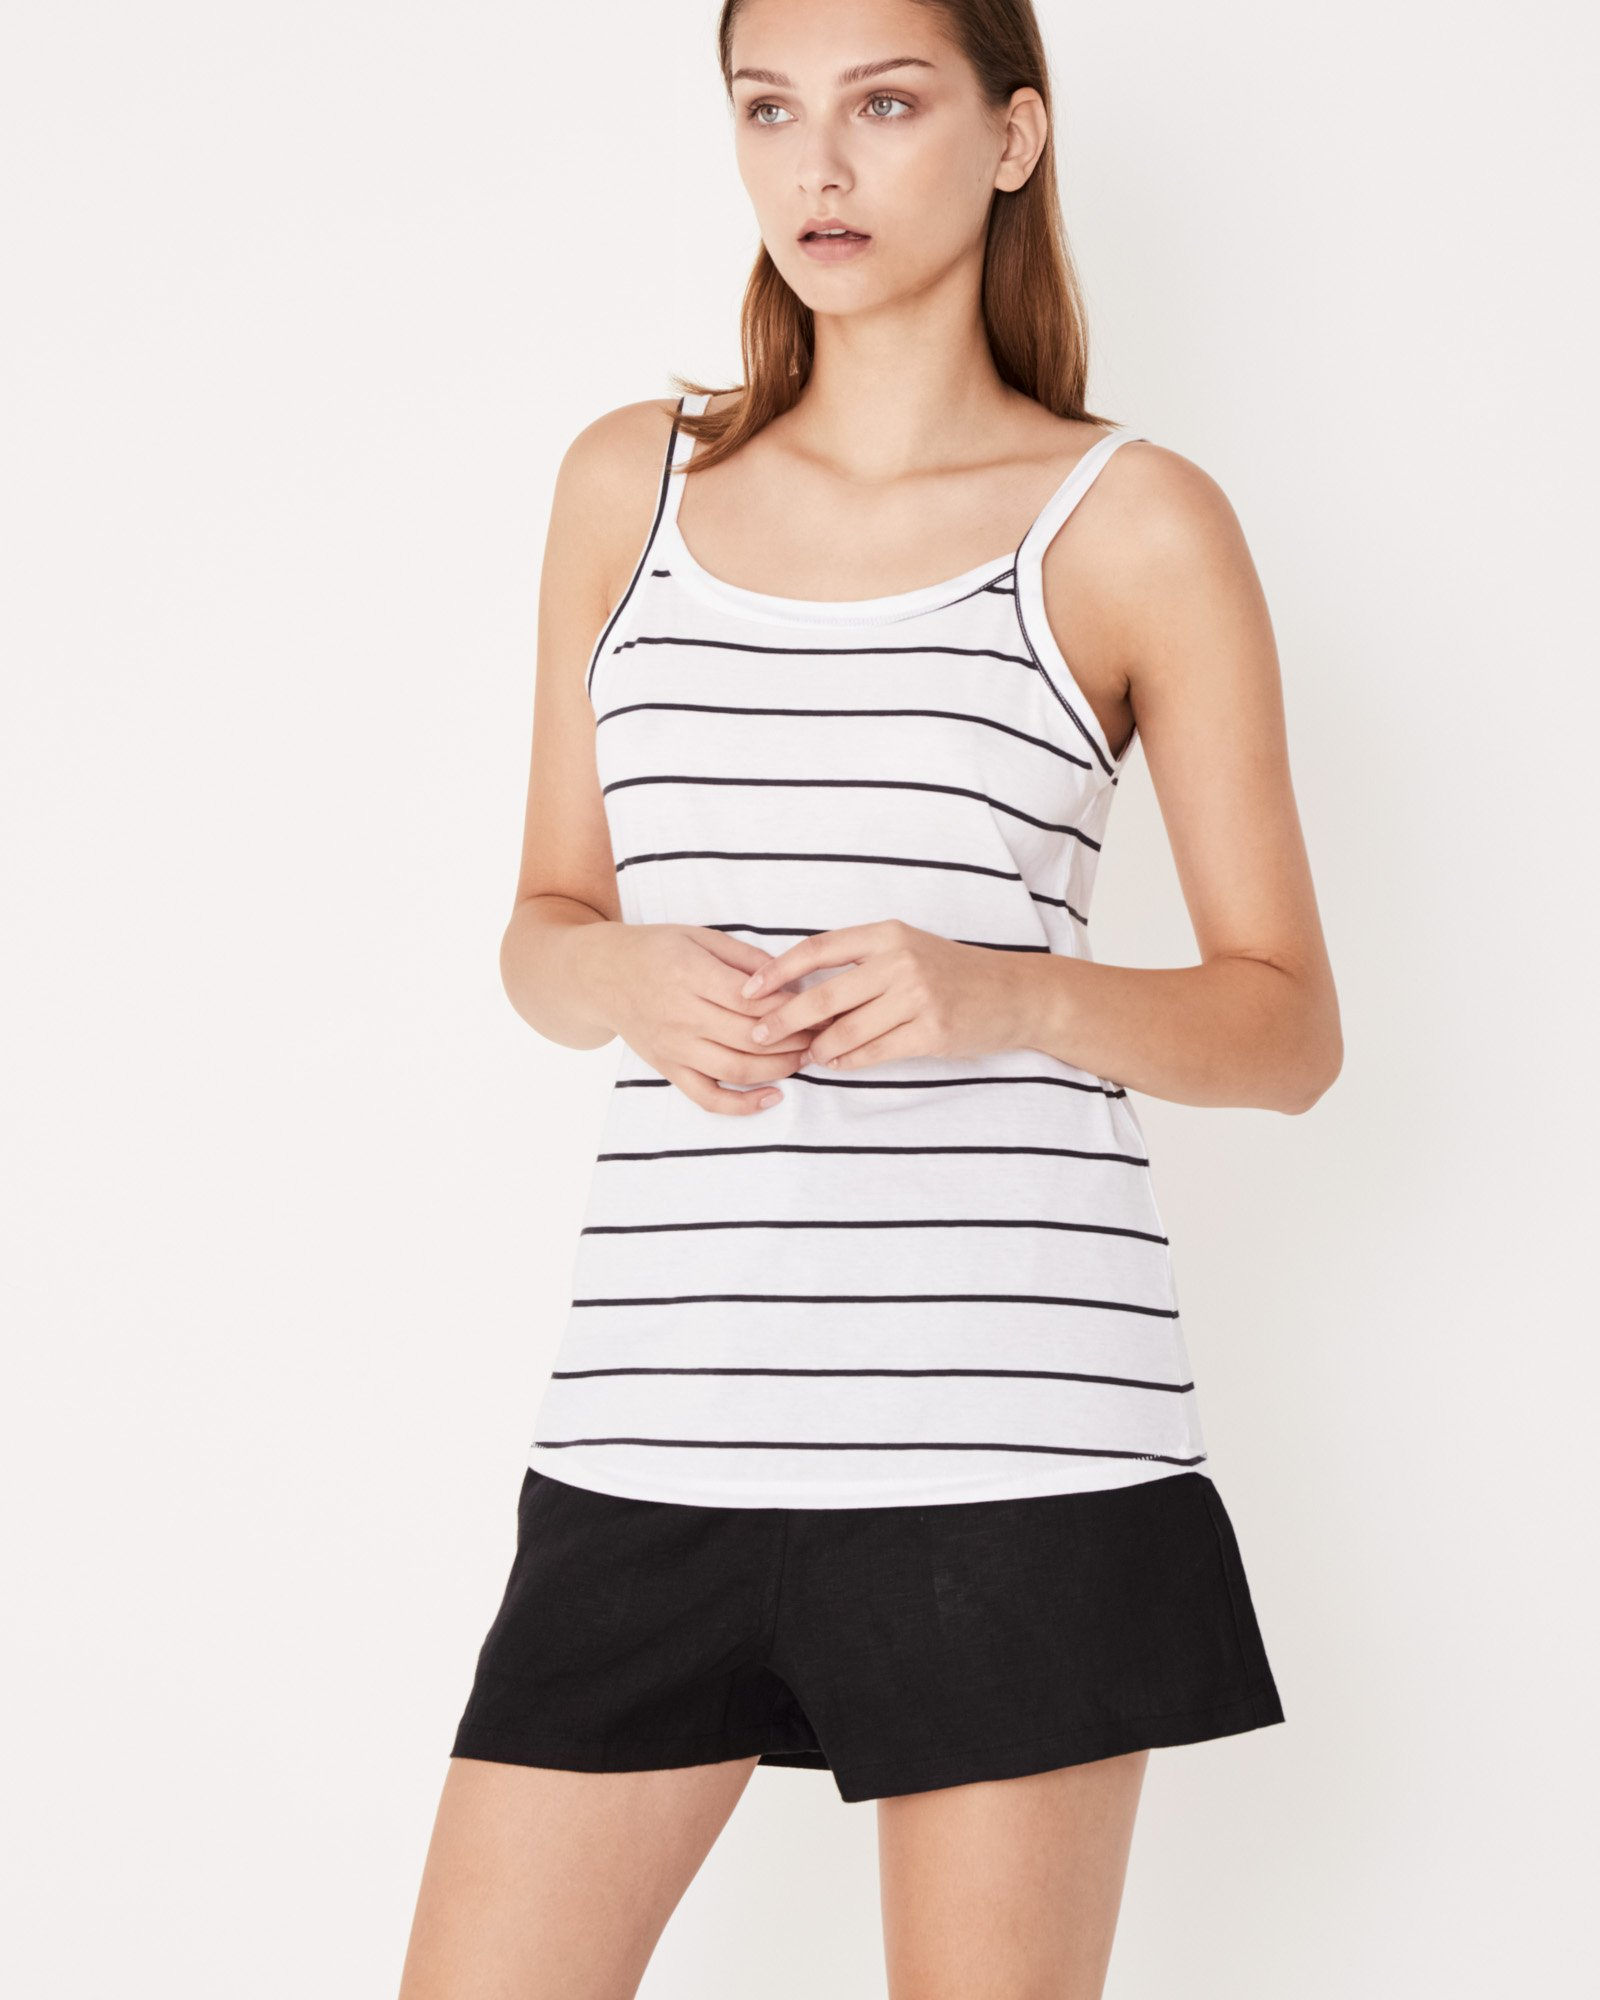 Daily Singlet Stripe by Assembly the Label / Harry & Gretel